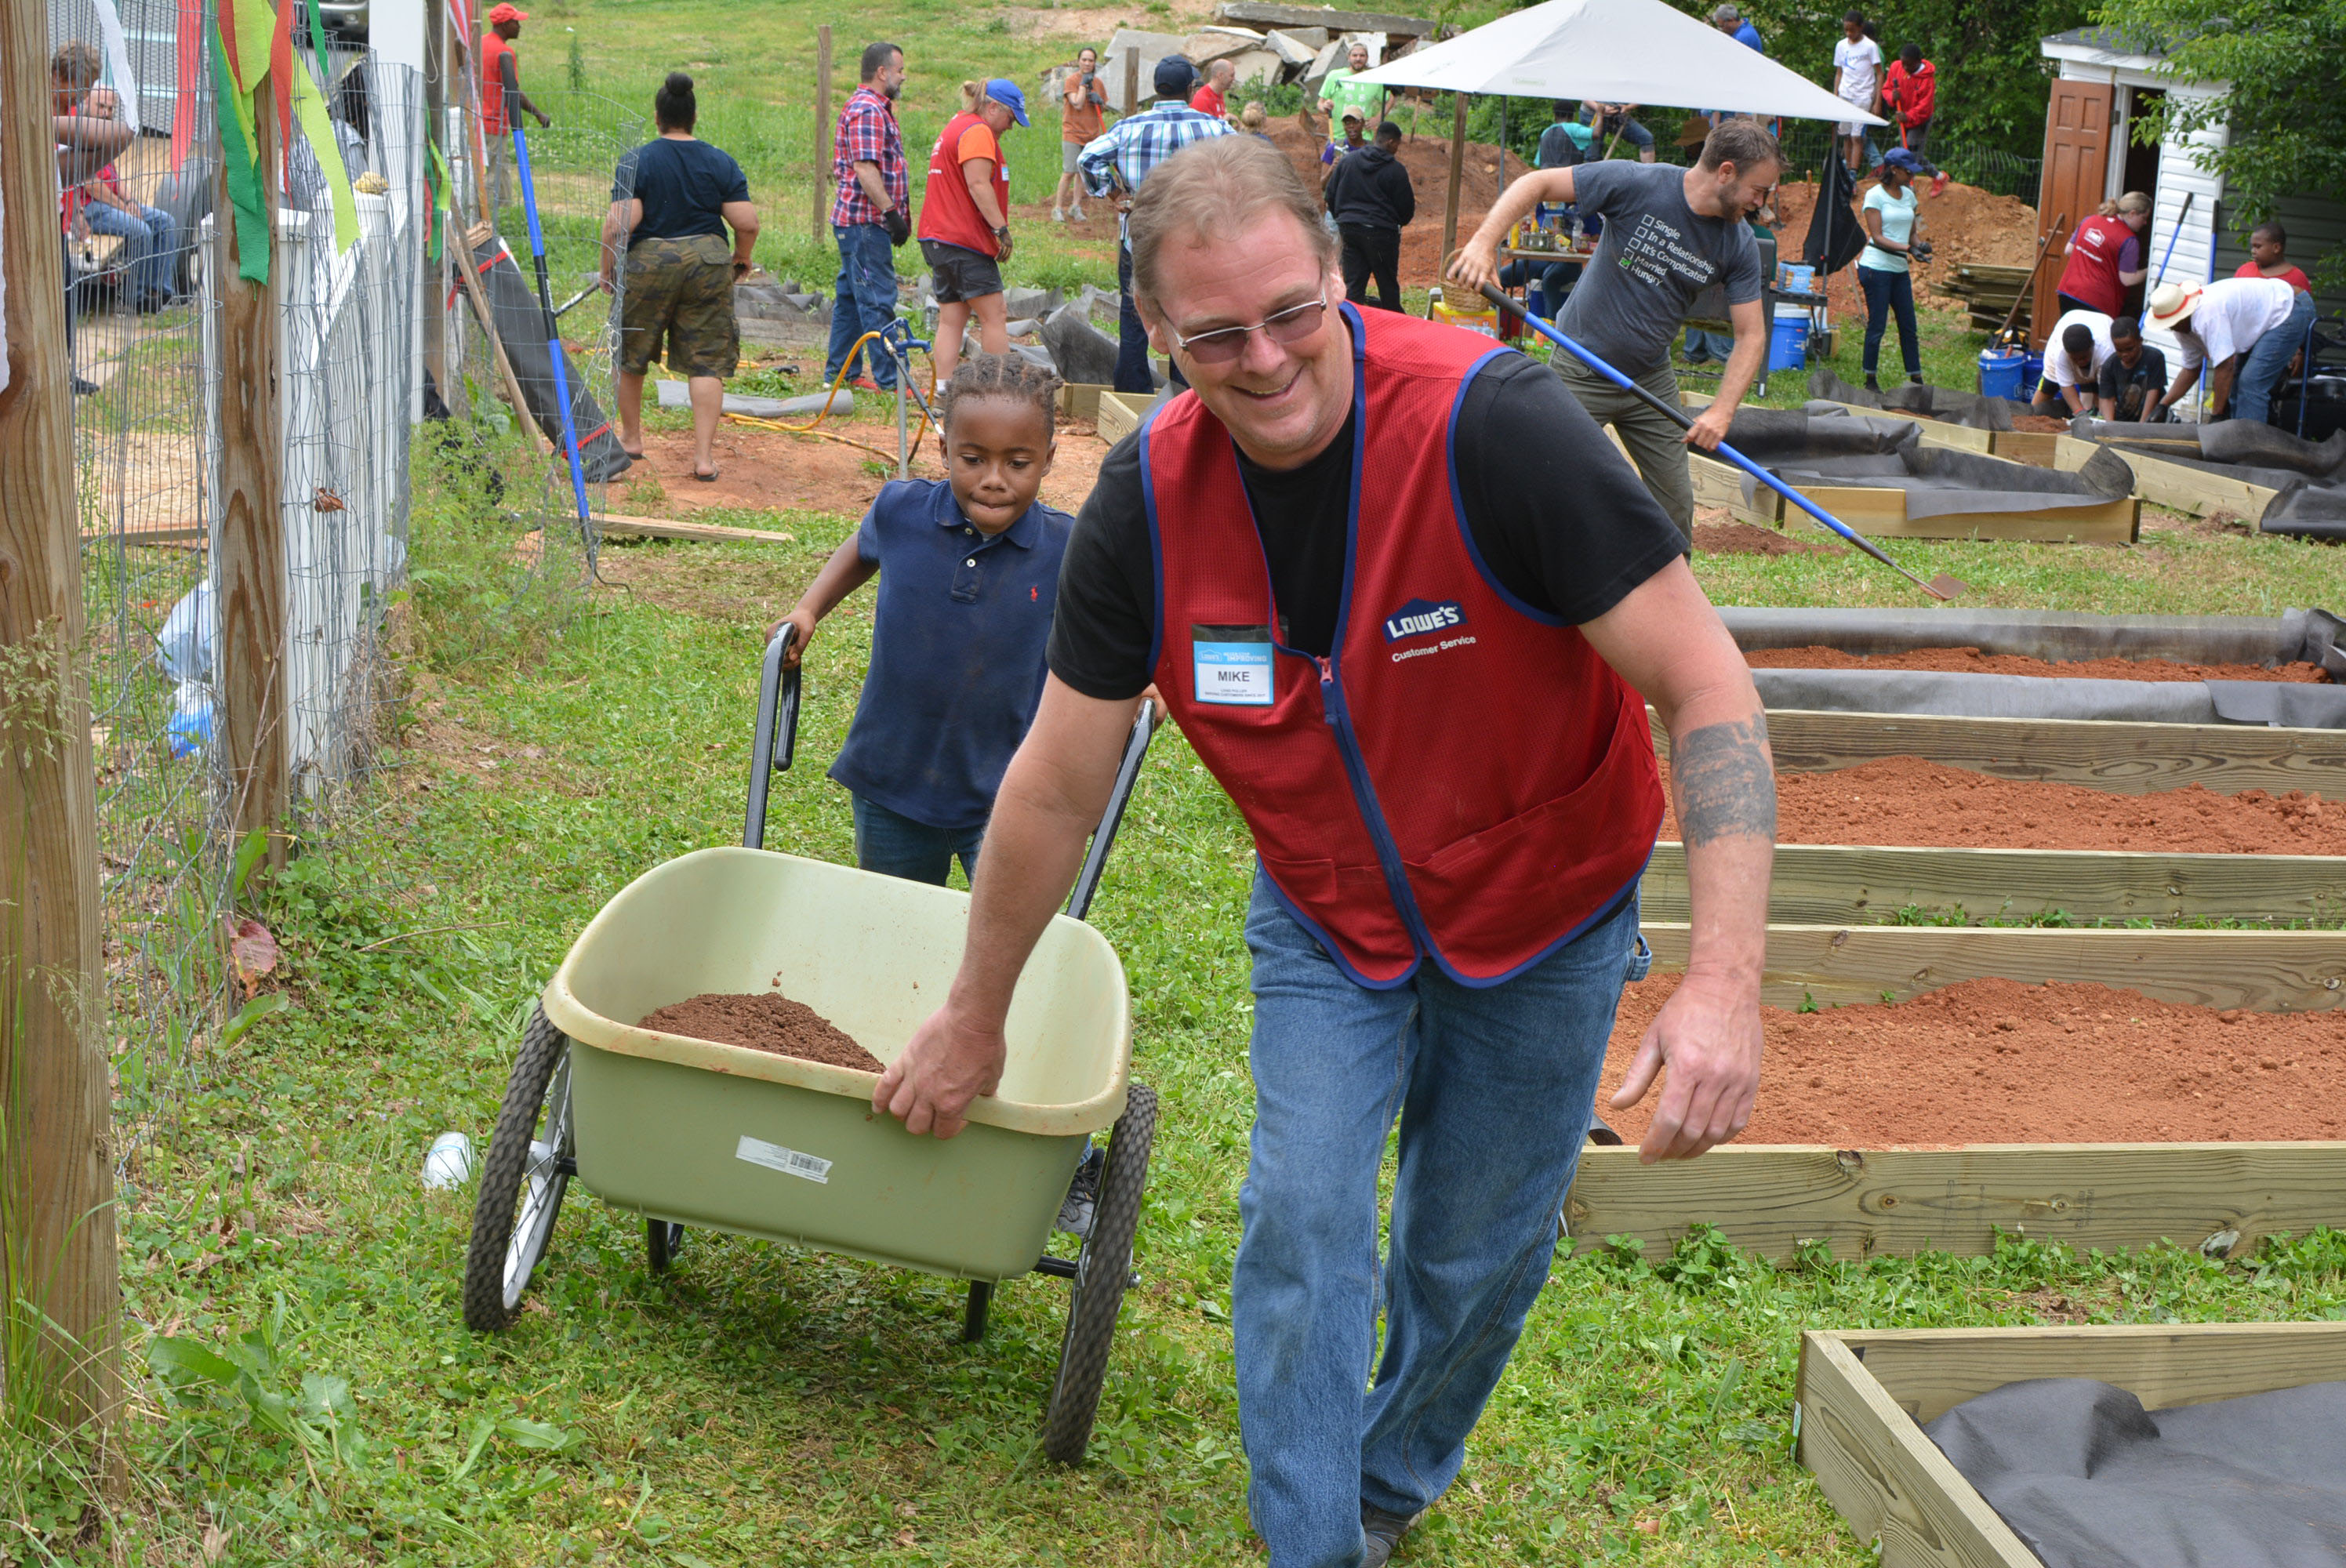 Lowe's employee and boy with wheelbarrow